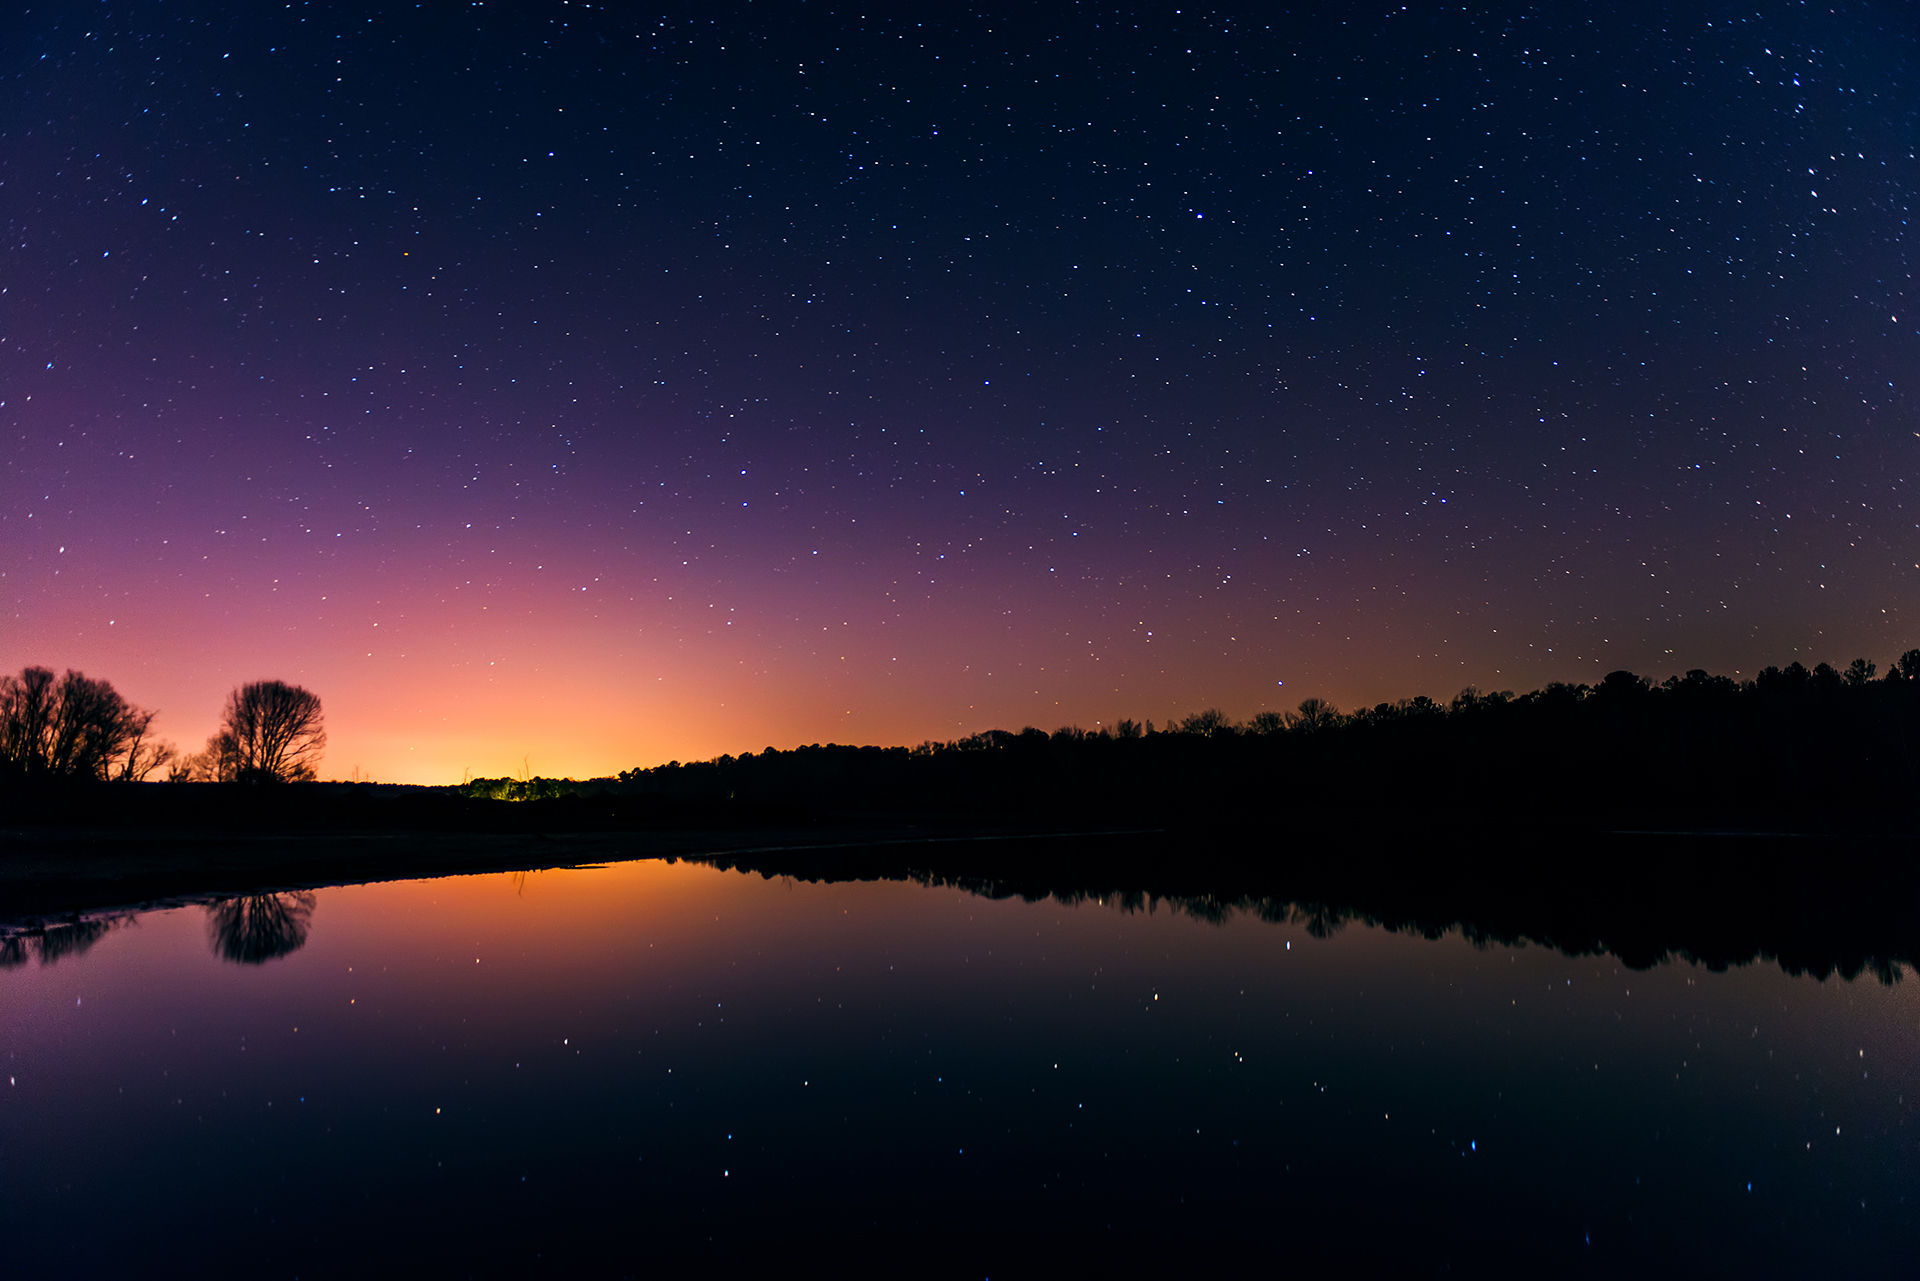 A Glow in the Night Sky - Snake Creek Park